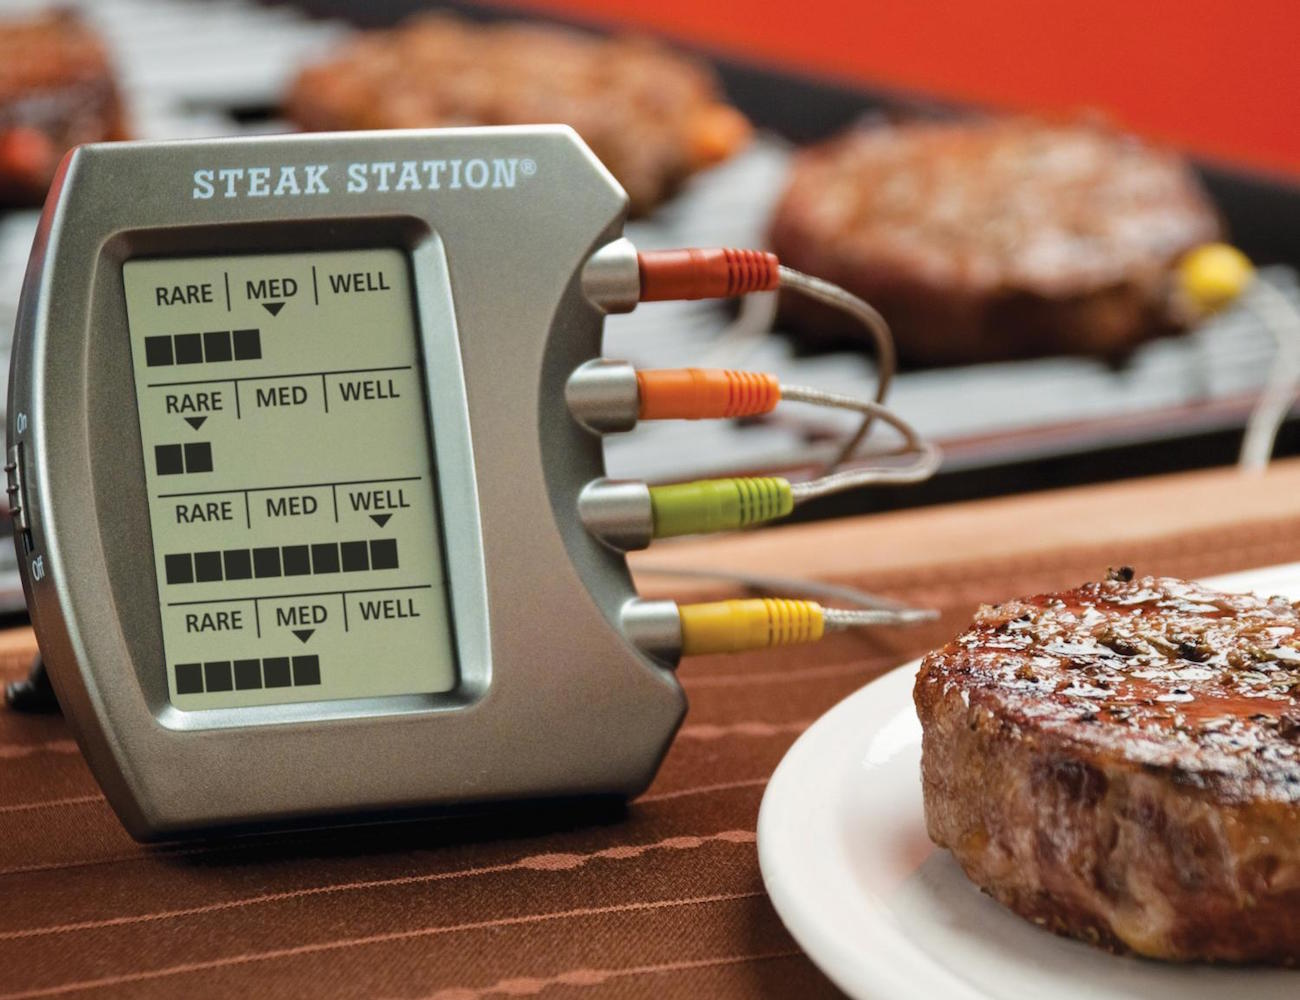 steak-station-thermometer-02